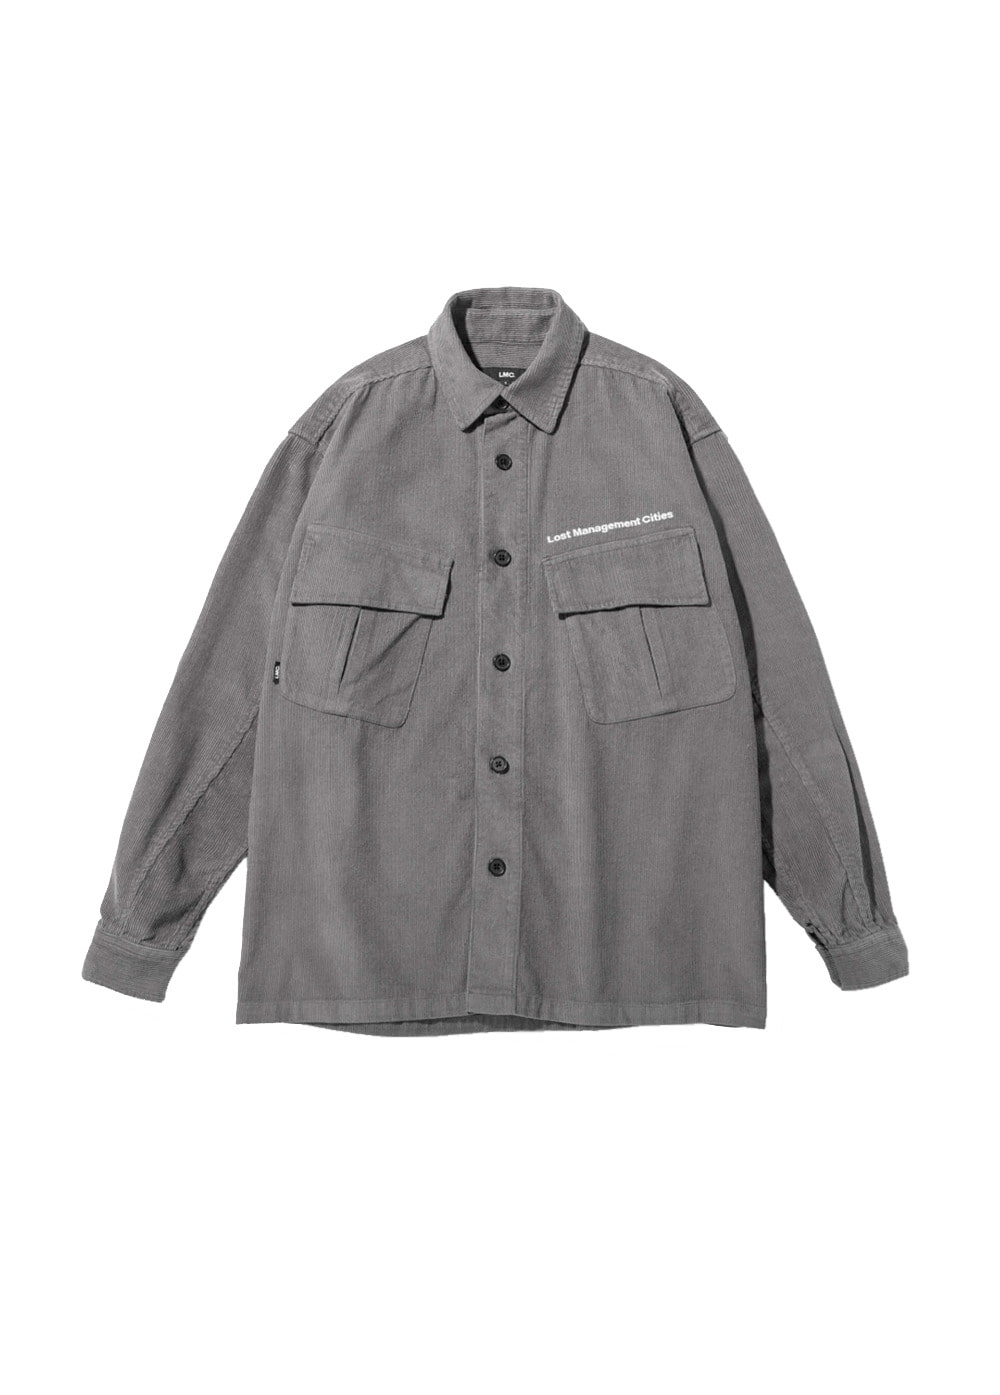 LMC JF CORDUROY SHIRT dark gray